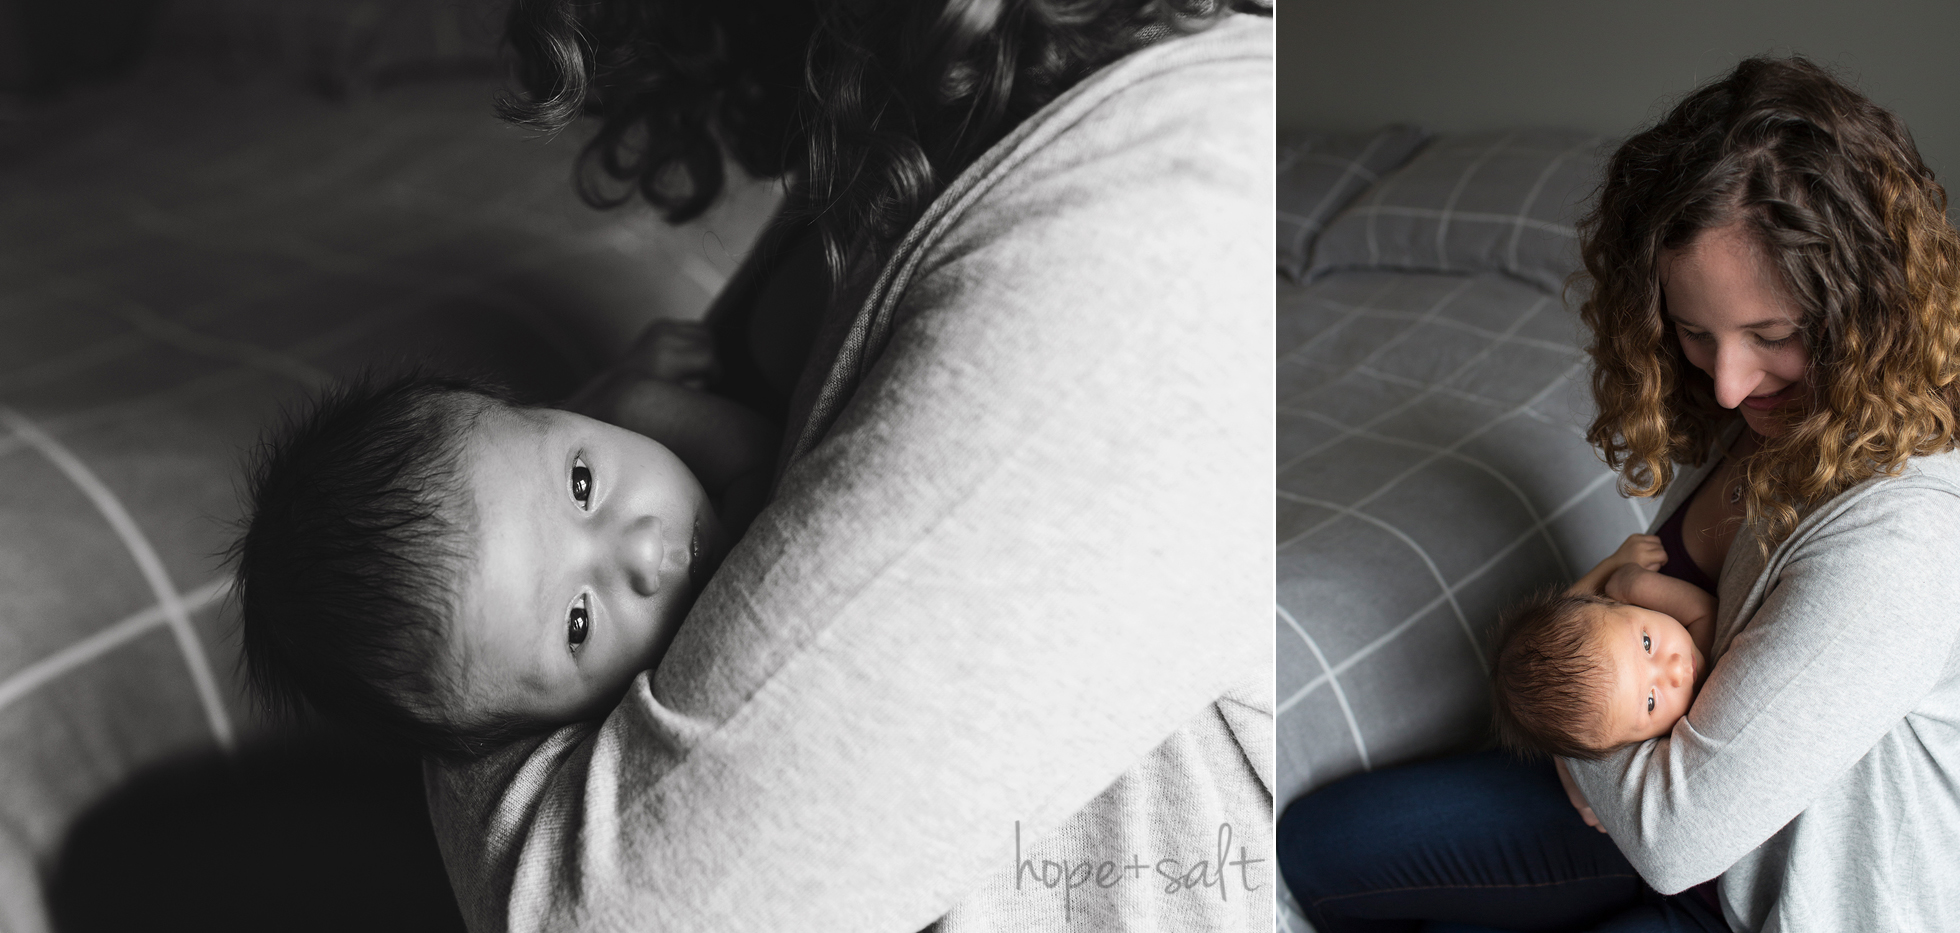 hamilton ontario newborn photographer - in home lifestyle session for baby boy calvin and parents natural emotion candid images by Burlington Photographer Hope + Salt